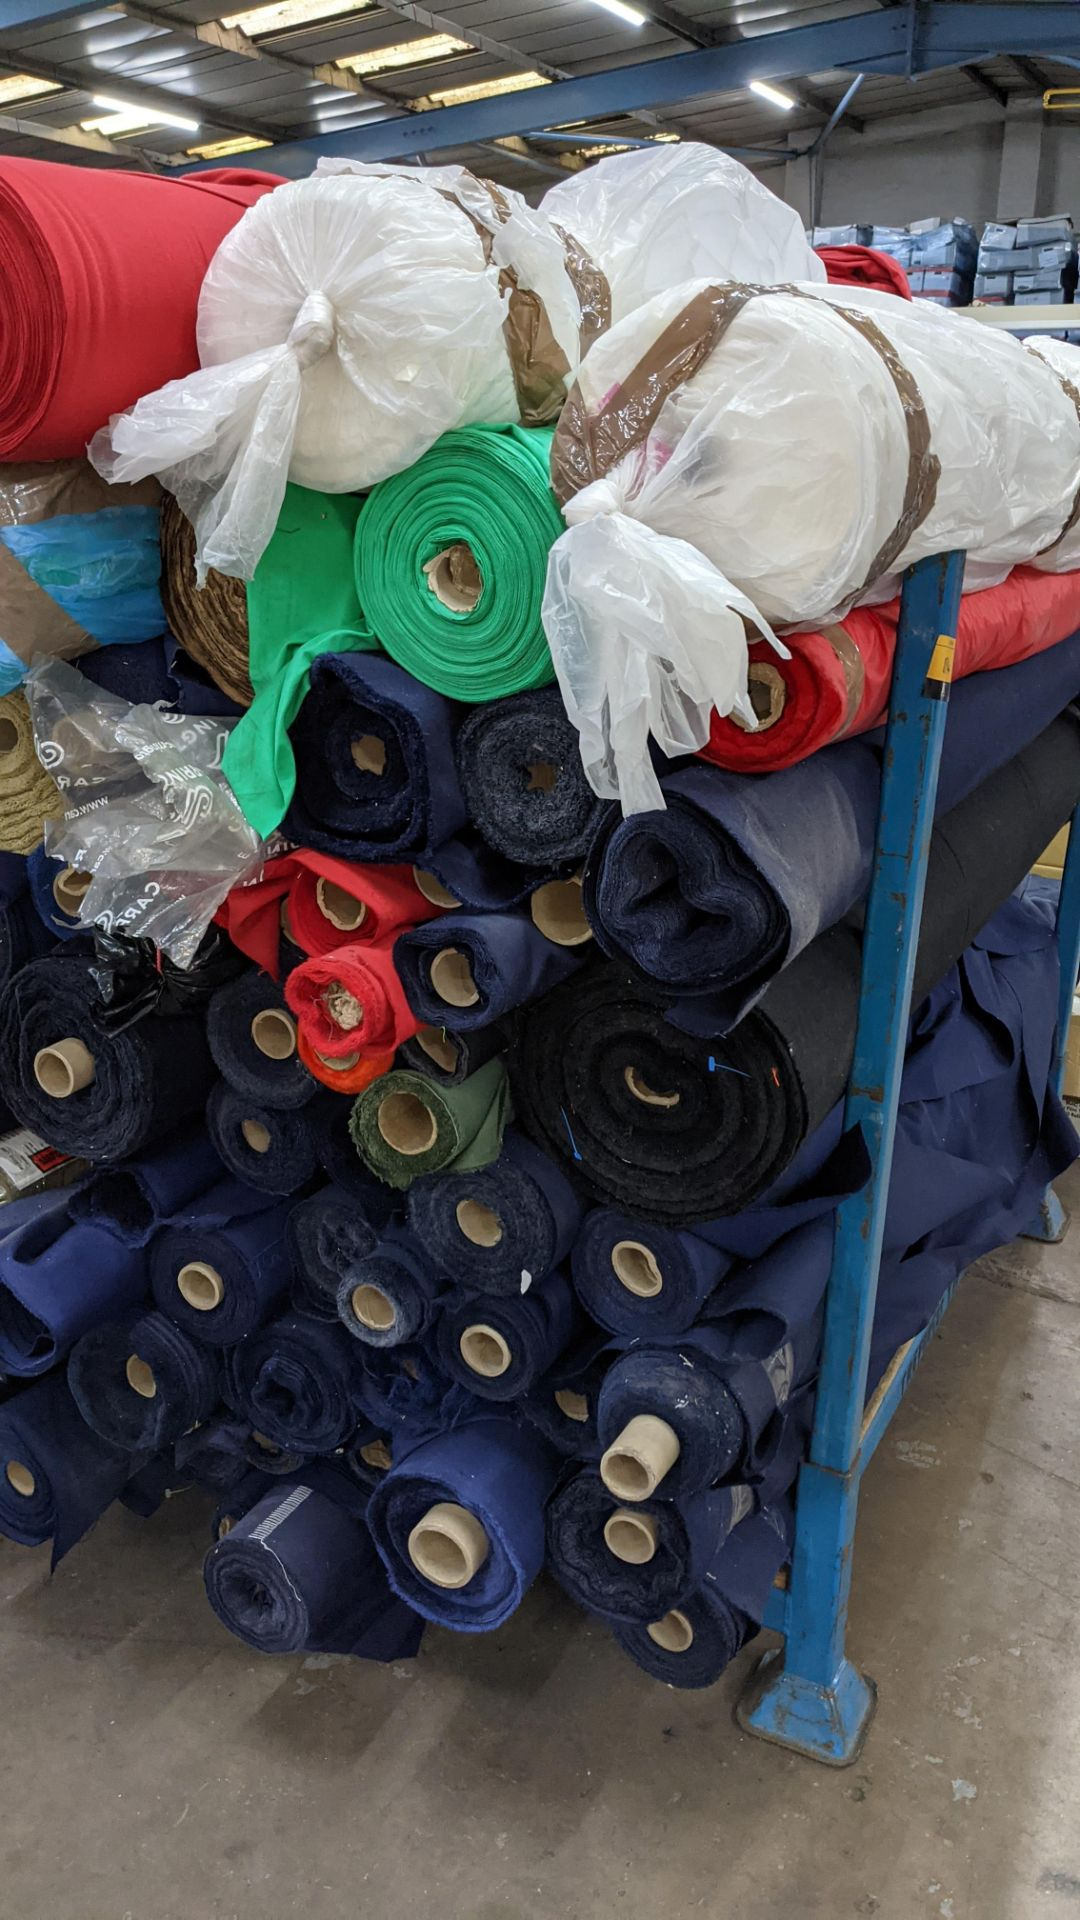 The contents of a large stillage of fabric. Please note the stillage is excluded and cannot be remo - Image 5 of 8